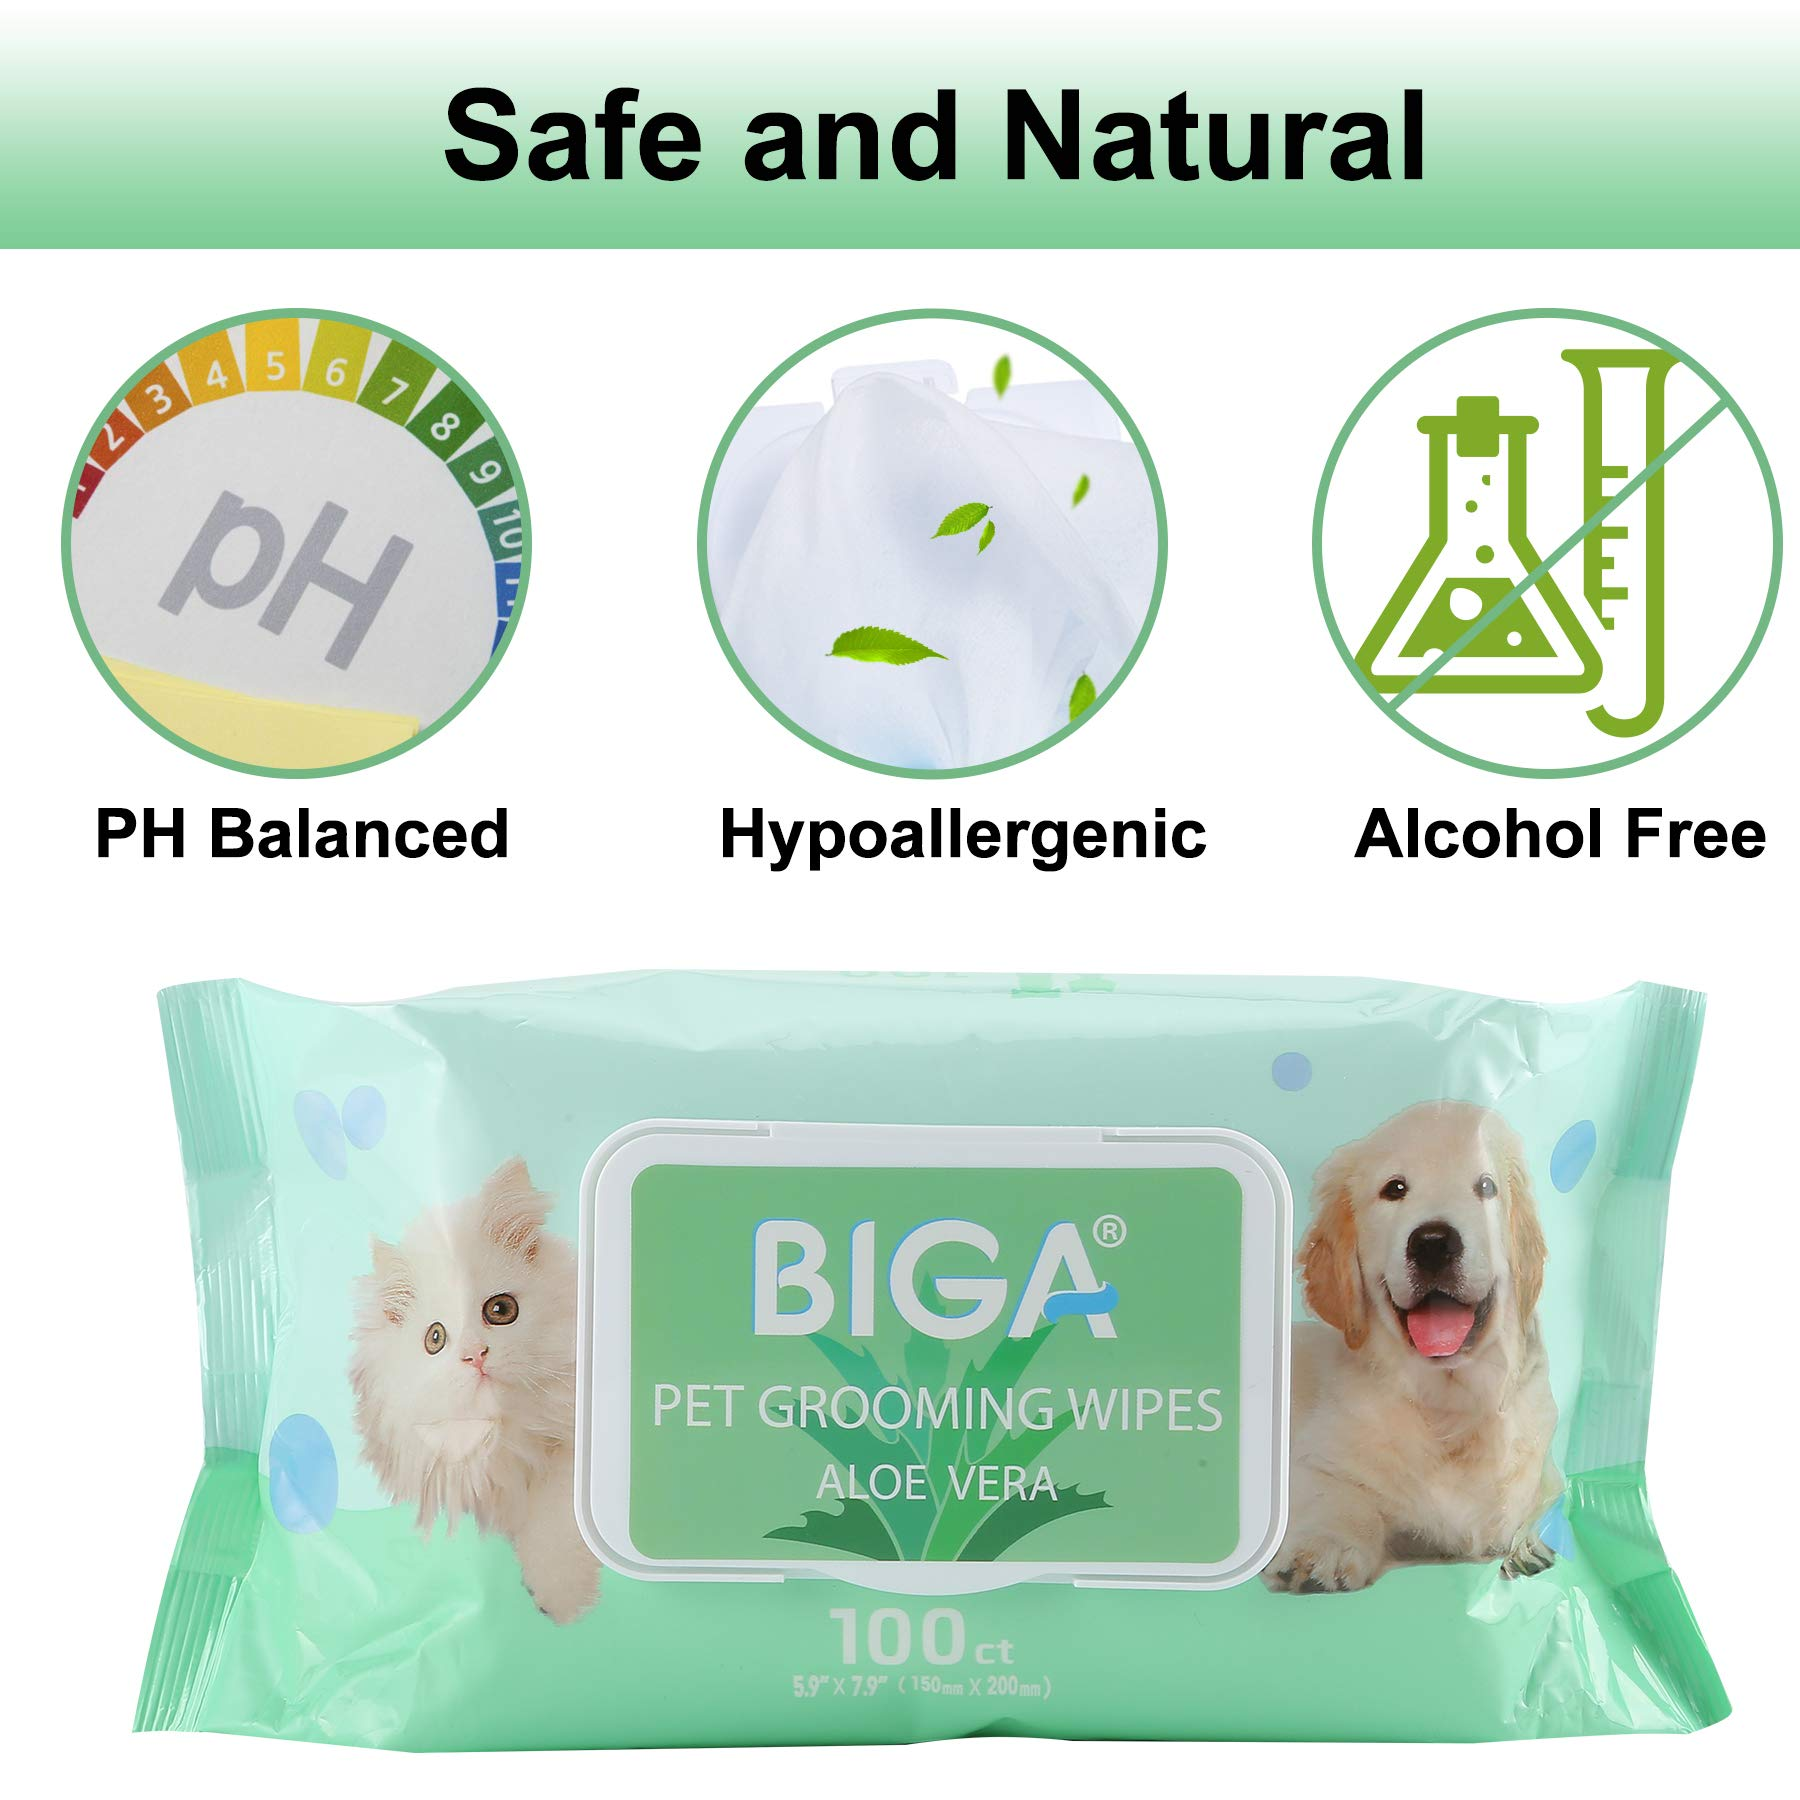 Deodorizing Hypoallergenic Pet Wipes with Fragrance Free Natural Organic and Antibacterial for Cleaning Face Butt Eyes Ears Paws Teeth 100ct per Pack (Aloe Vera 6 Pack) by BIGA (Image #3)